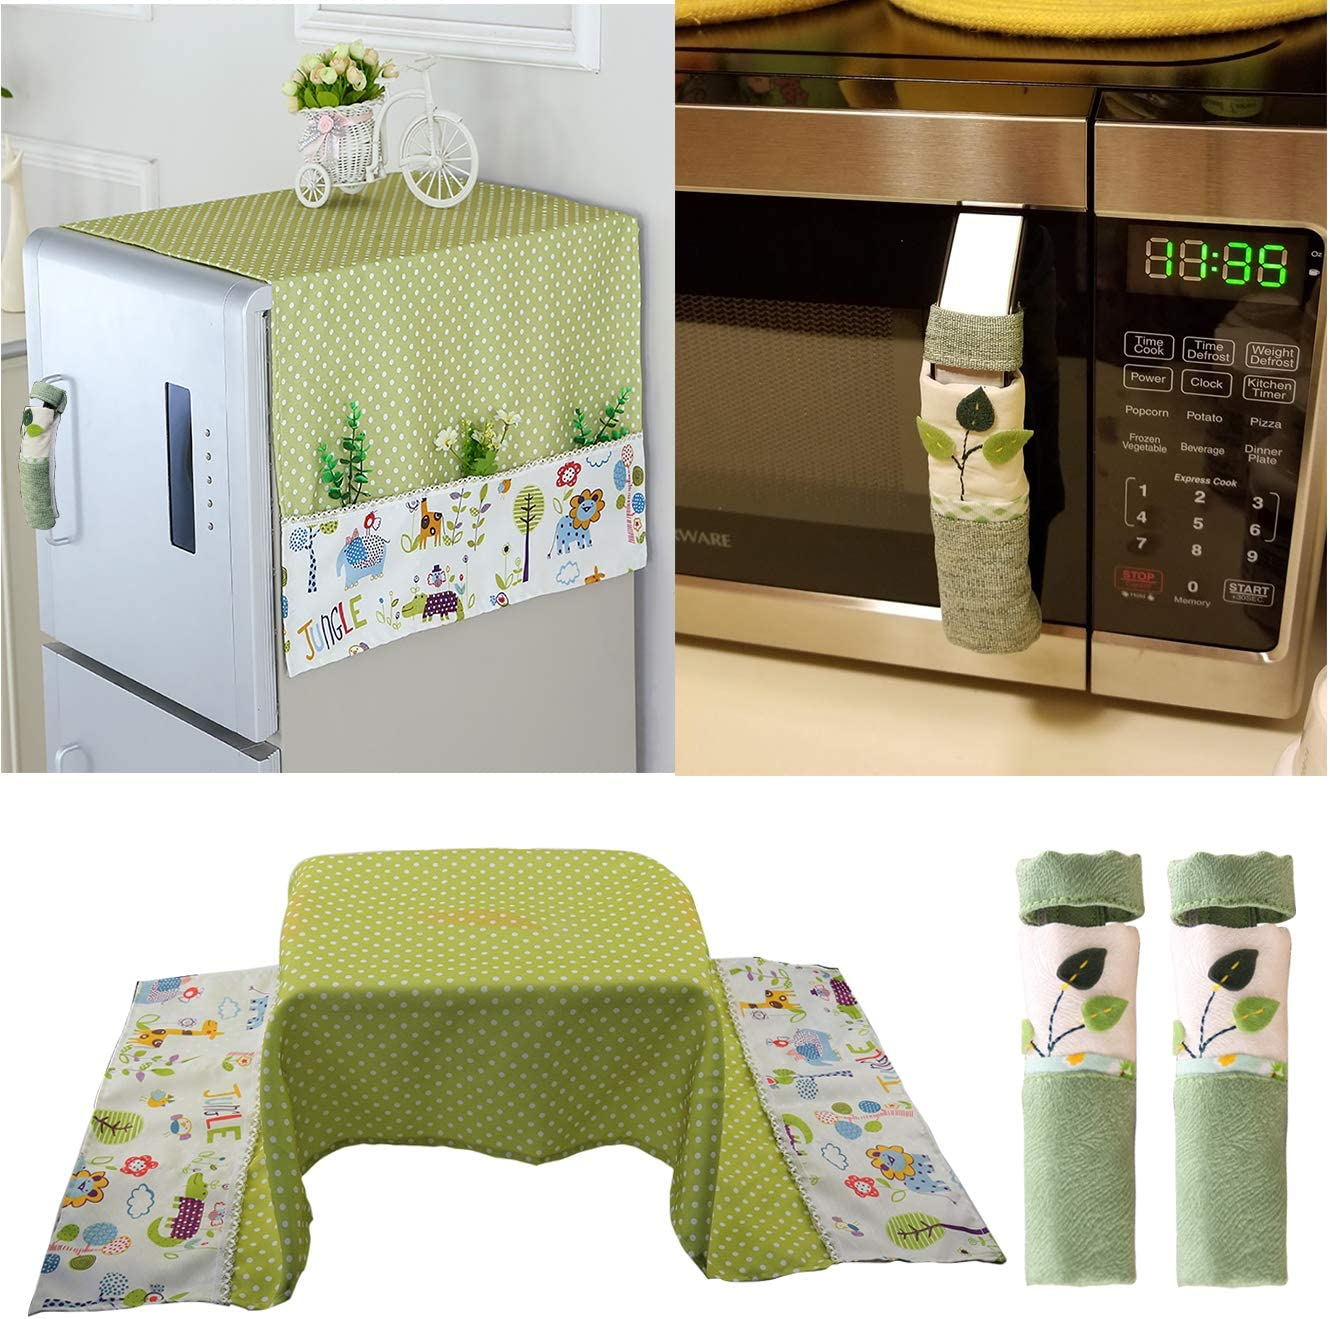 KEFAN Package of Fridge Dust Cover and Microwave Handle Cover Cotton Linen Cover for Washing Machine Oven Home Appliance (Green)